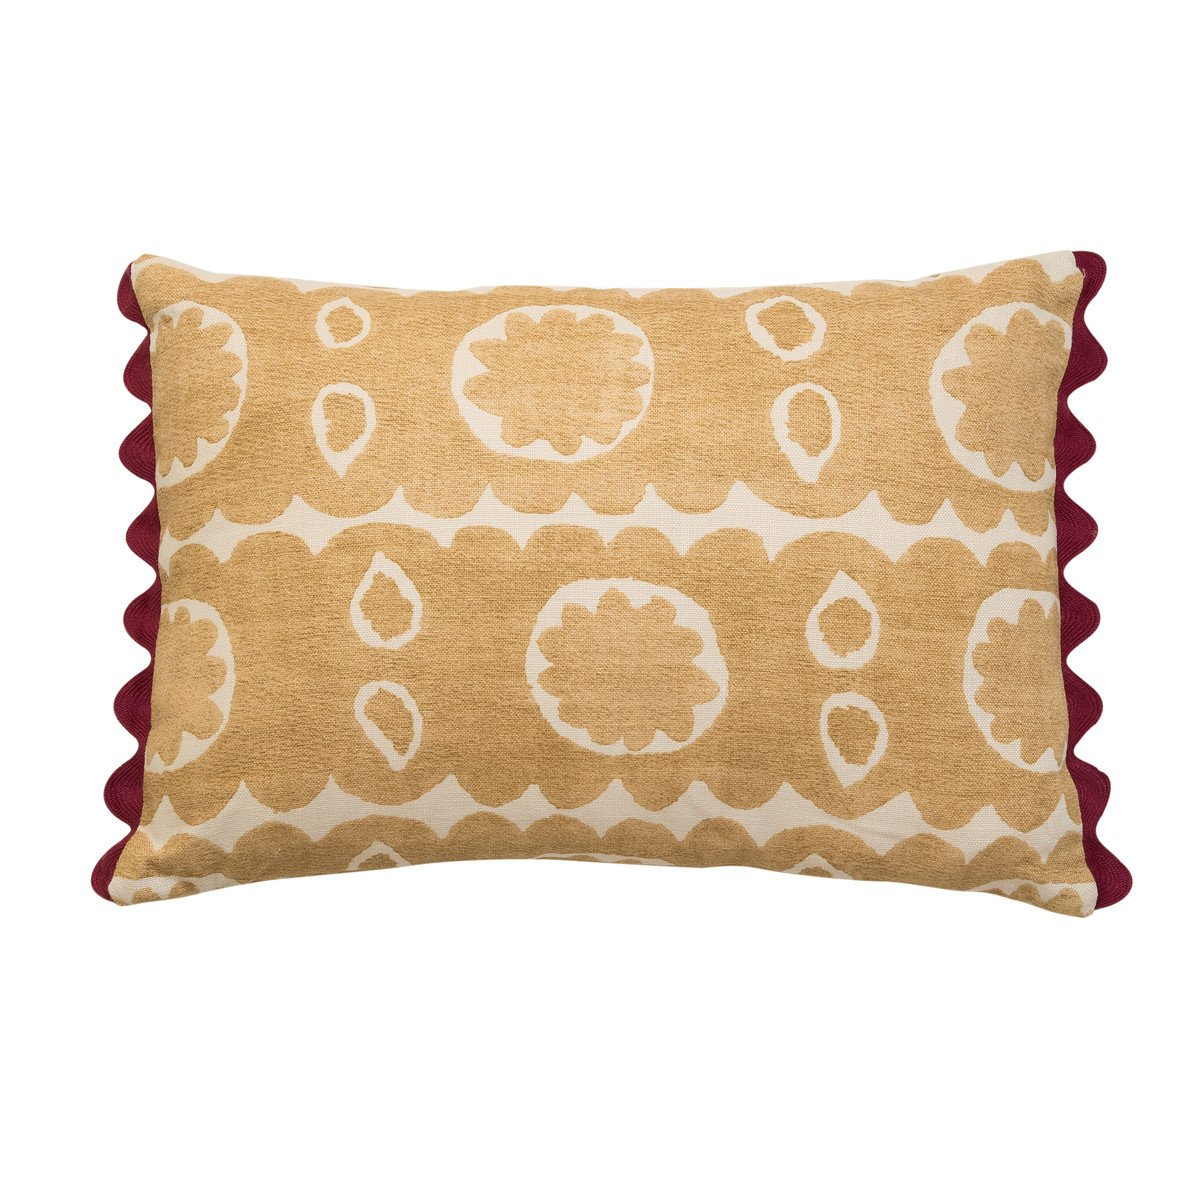 Osborne oblong cushion - Wicklewood